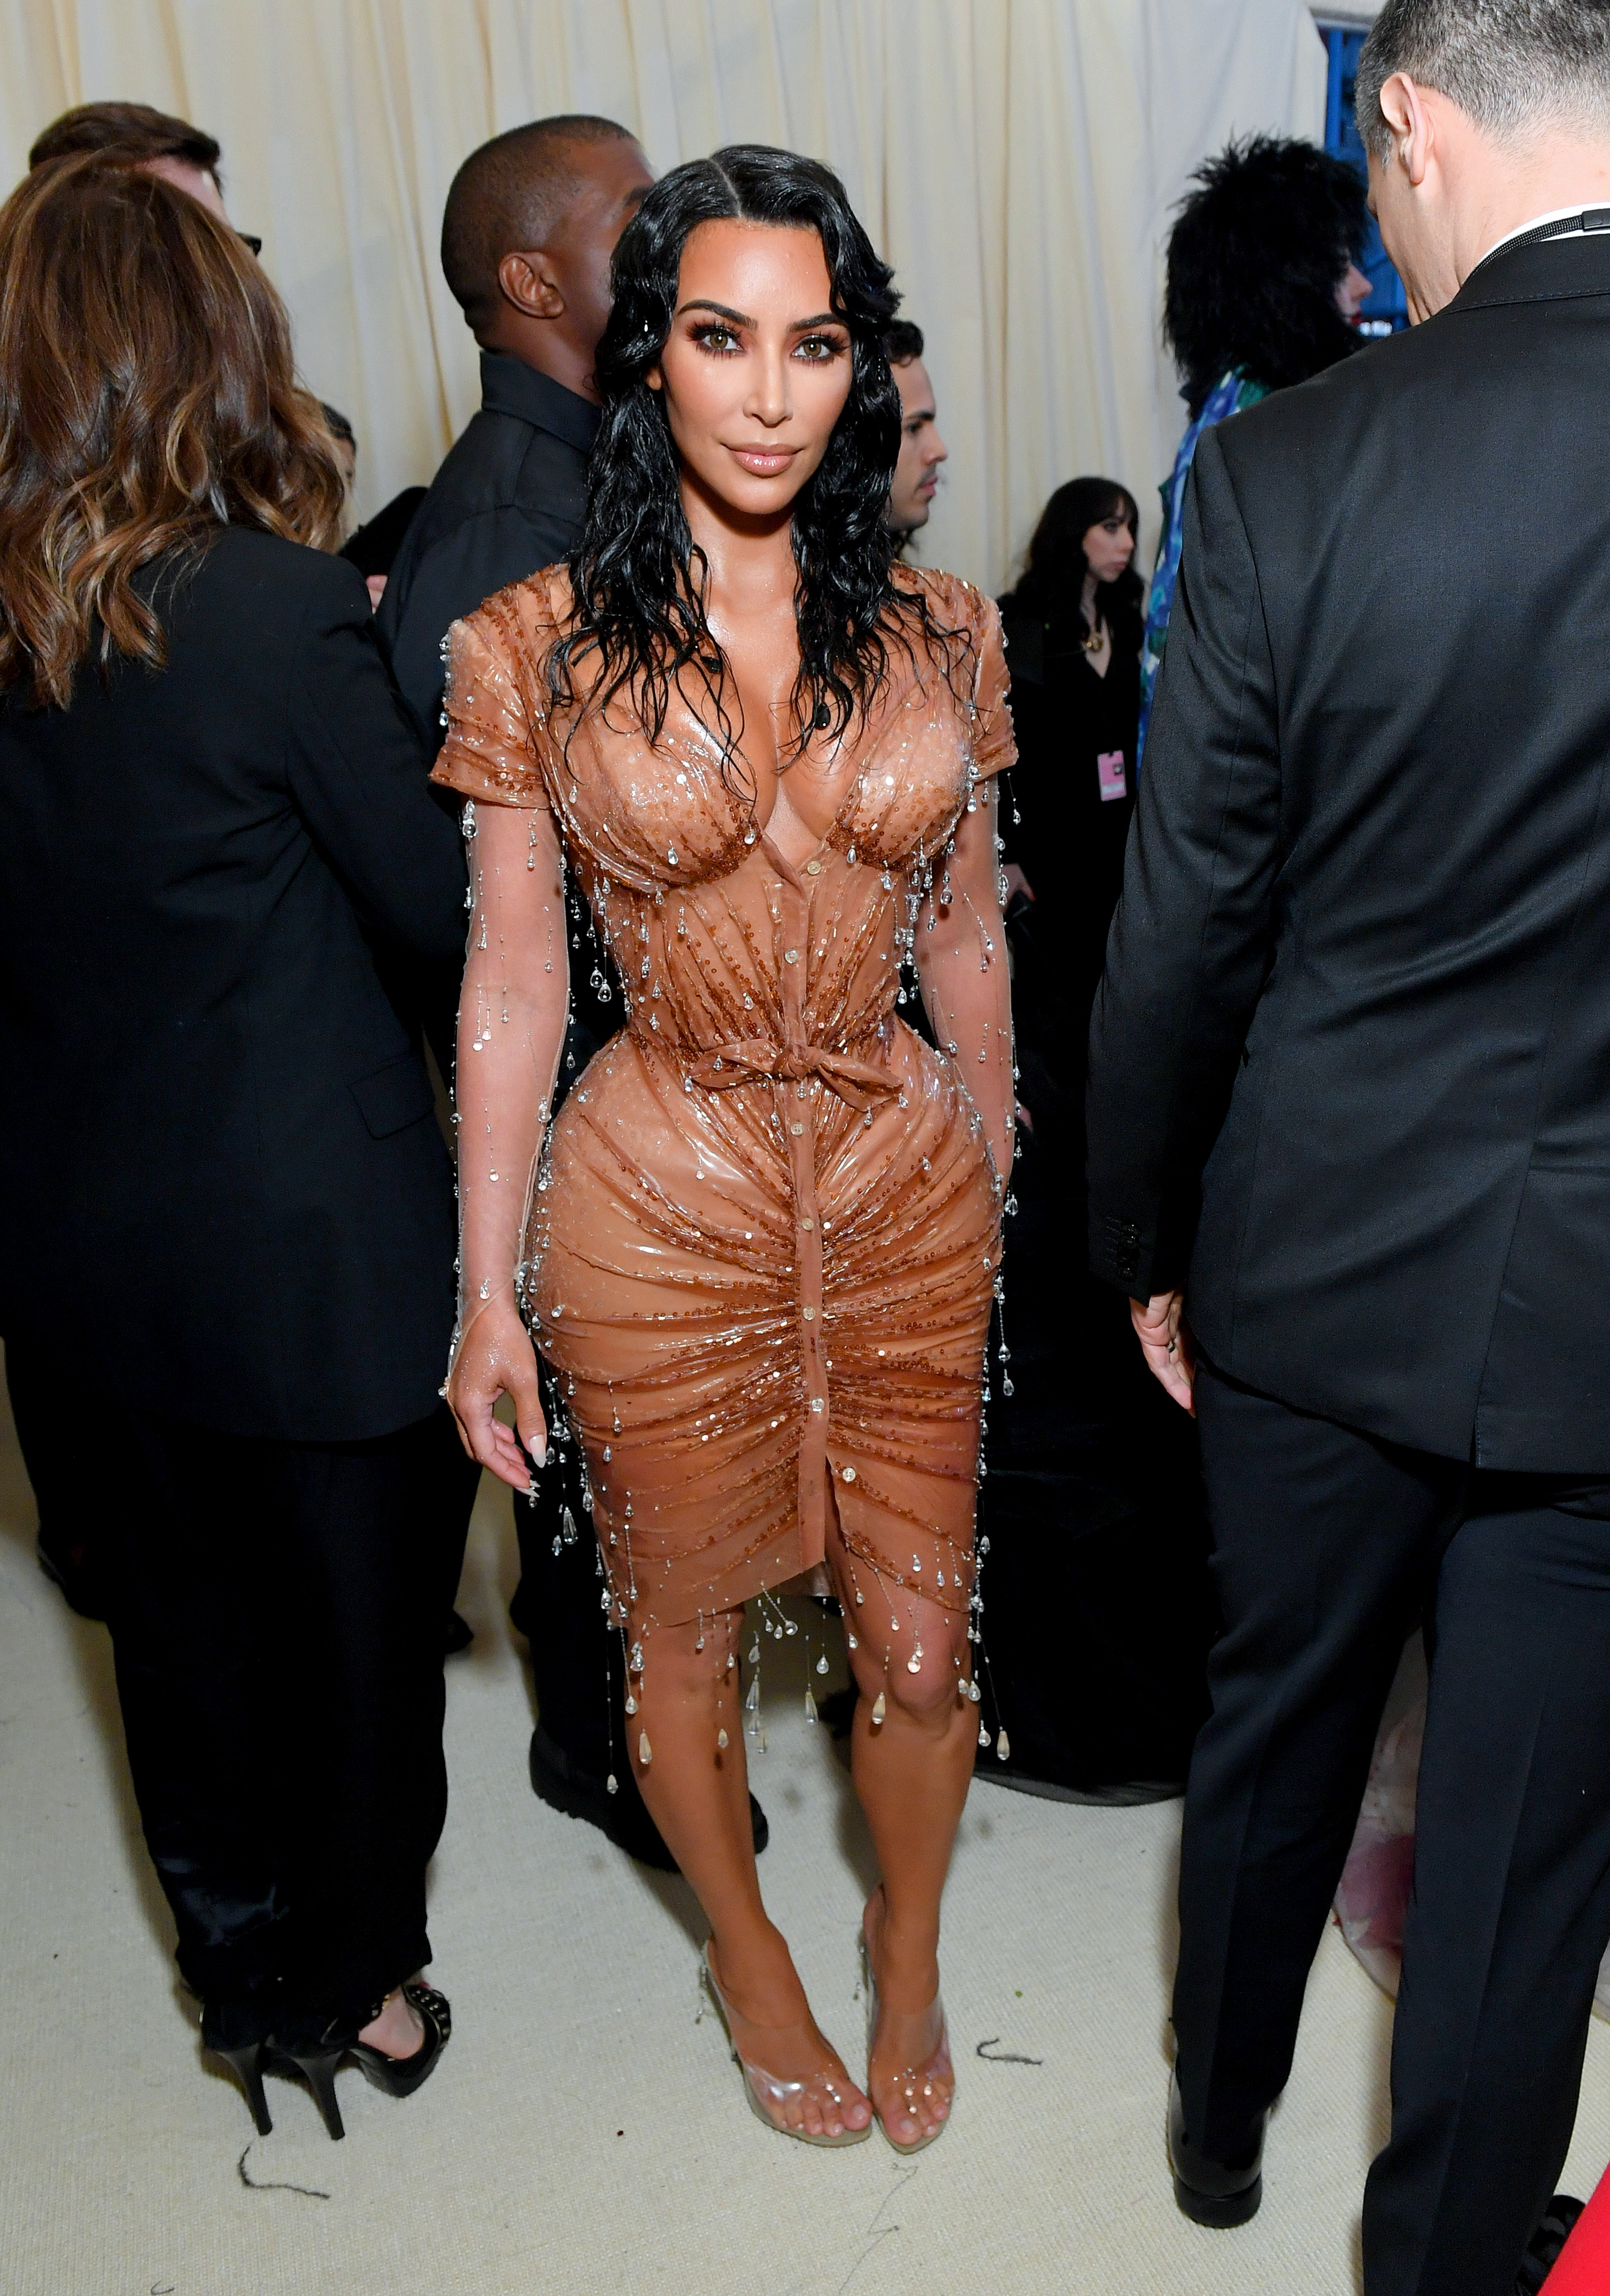 Kim Kardashian West na Met Gala, 2019 Autor: Mike Coppola/MG19/Getty Images for The Met Museum/Vogue